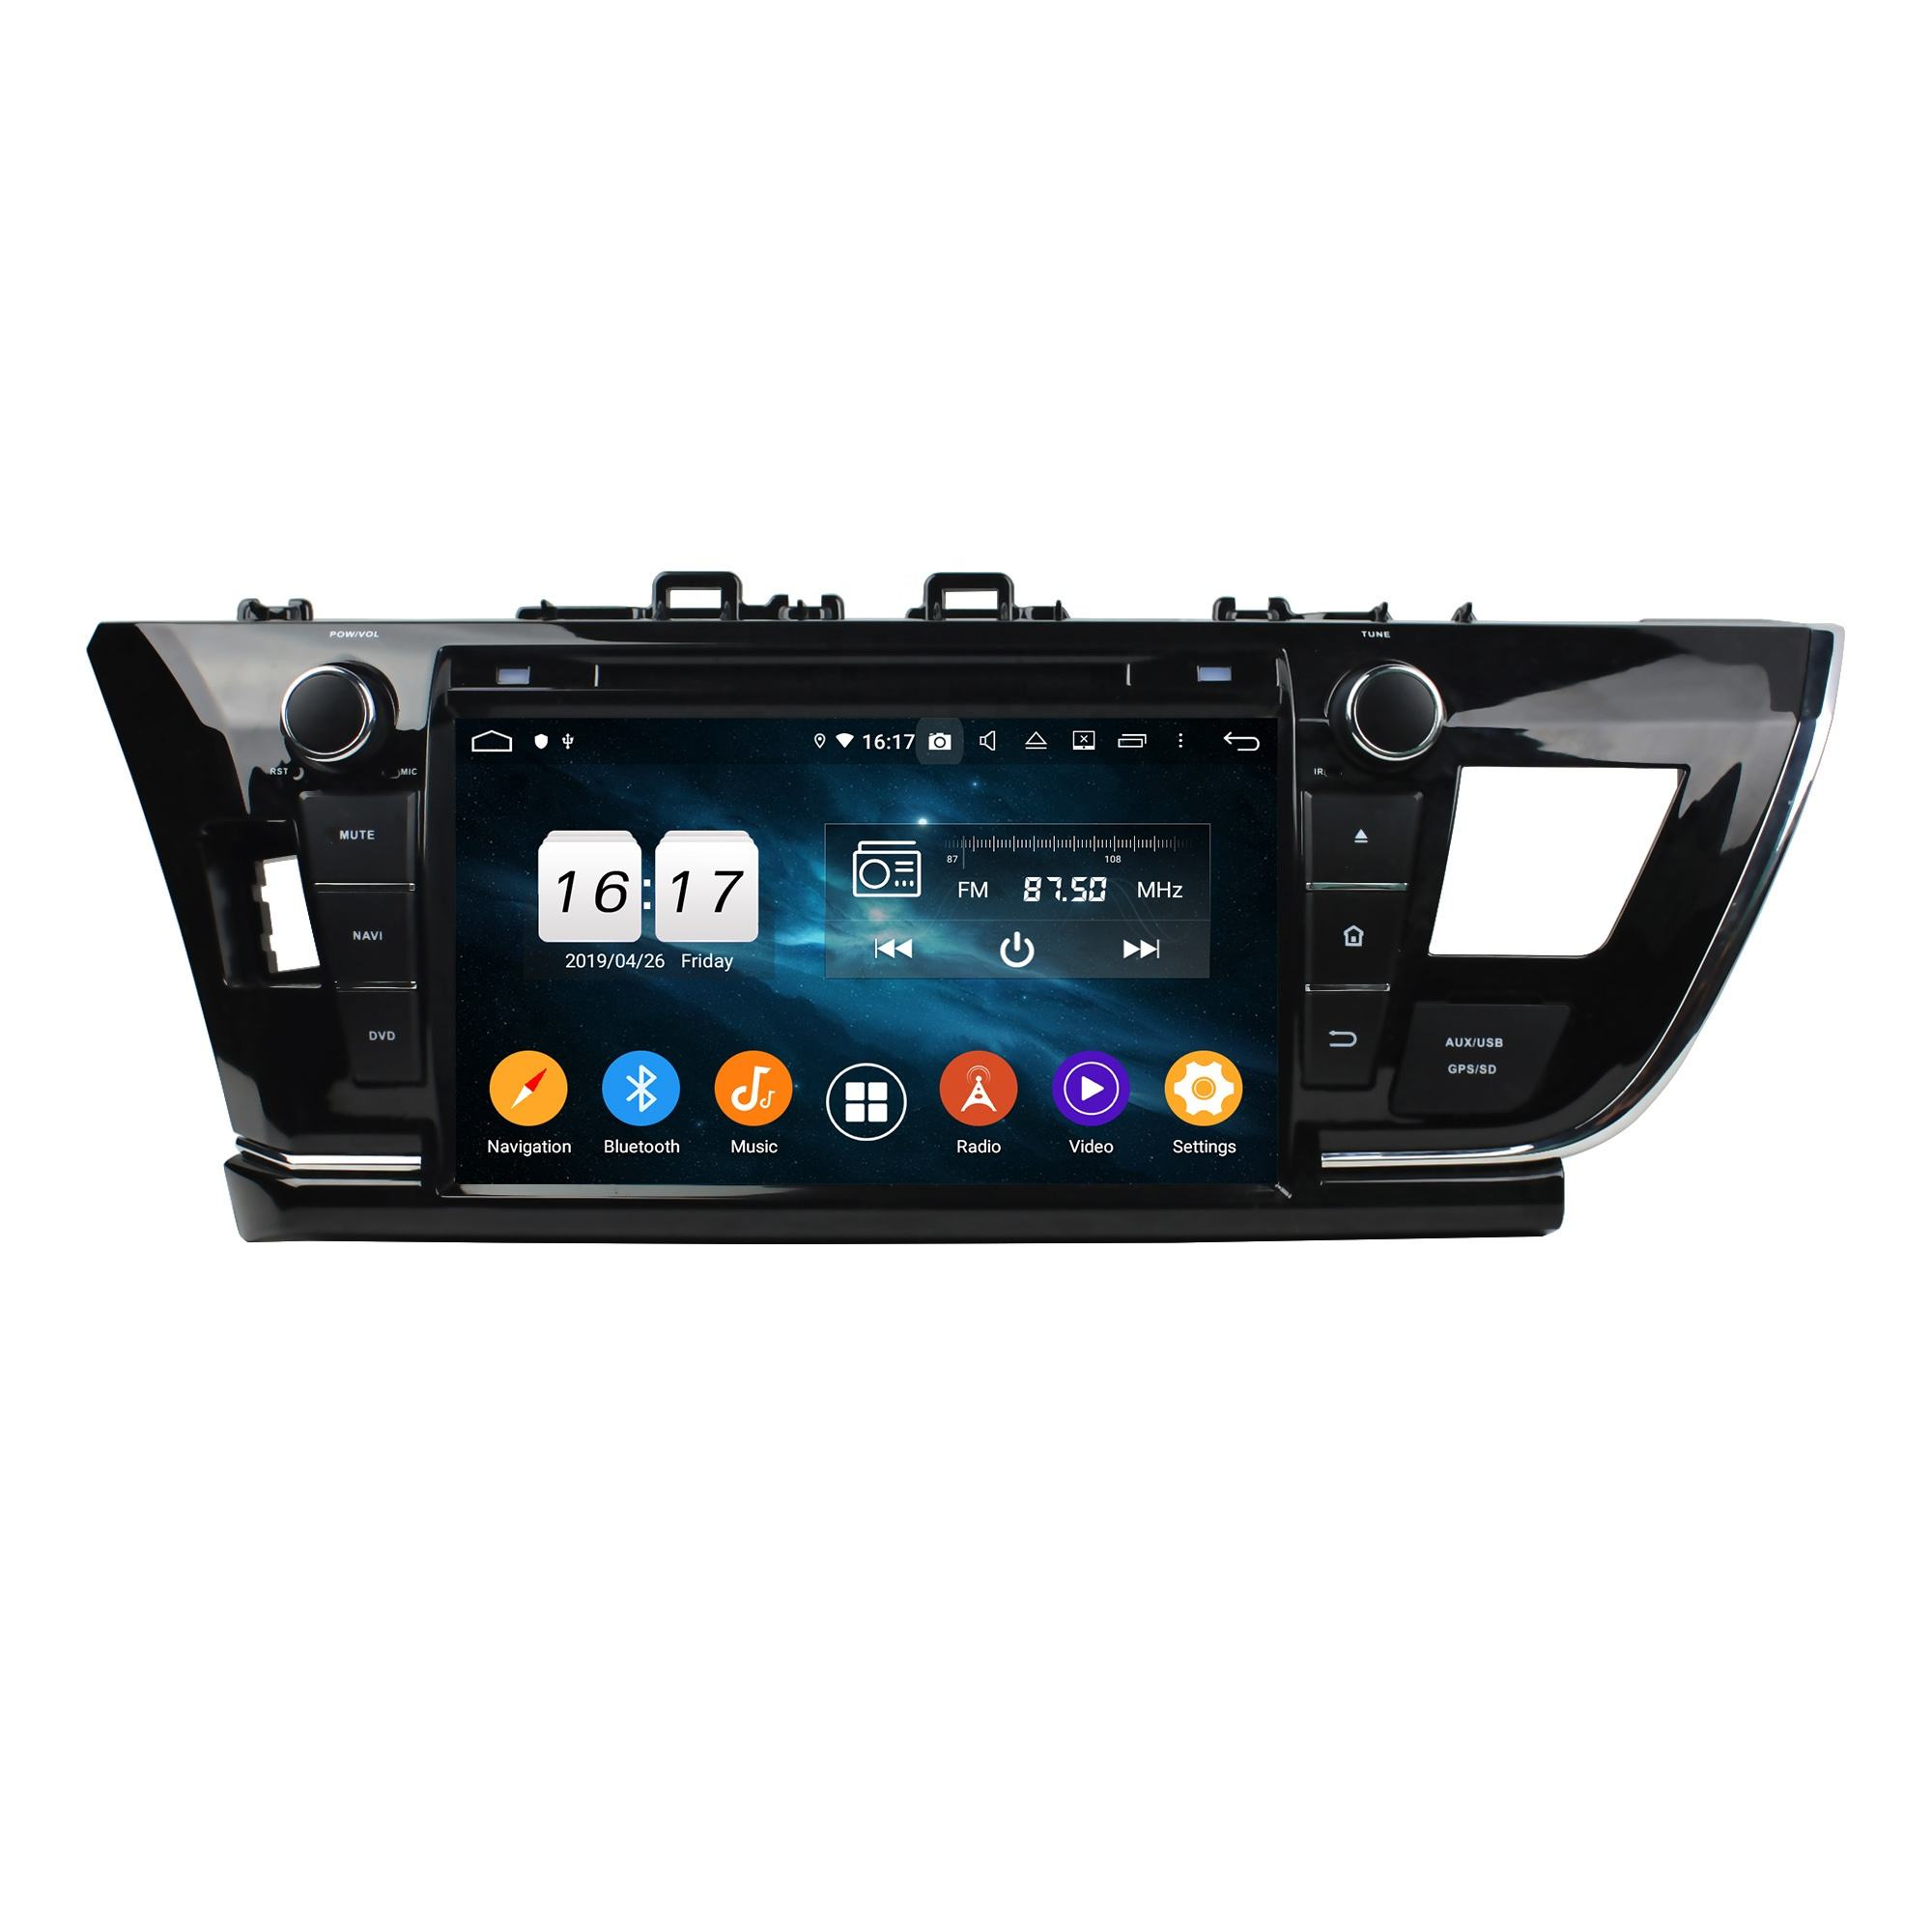 KD-9002 KLYDE Factory Wholesale Android 10 Car Auto Radio Stereo Multimedia Video <span class=keywords><strong>DVD</strong></span> Player für Corolla 2013-2016 LHD GPS Navi